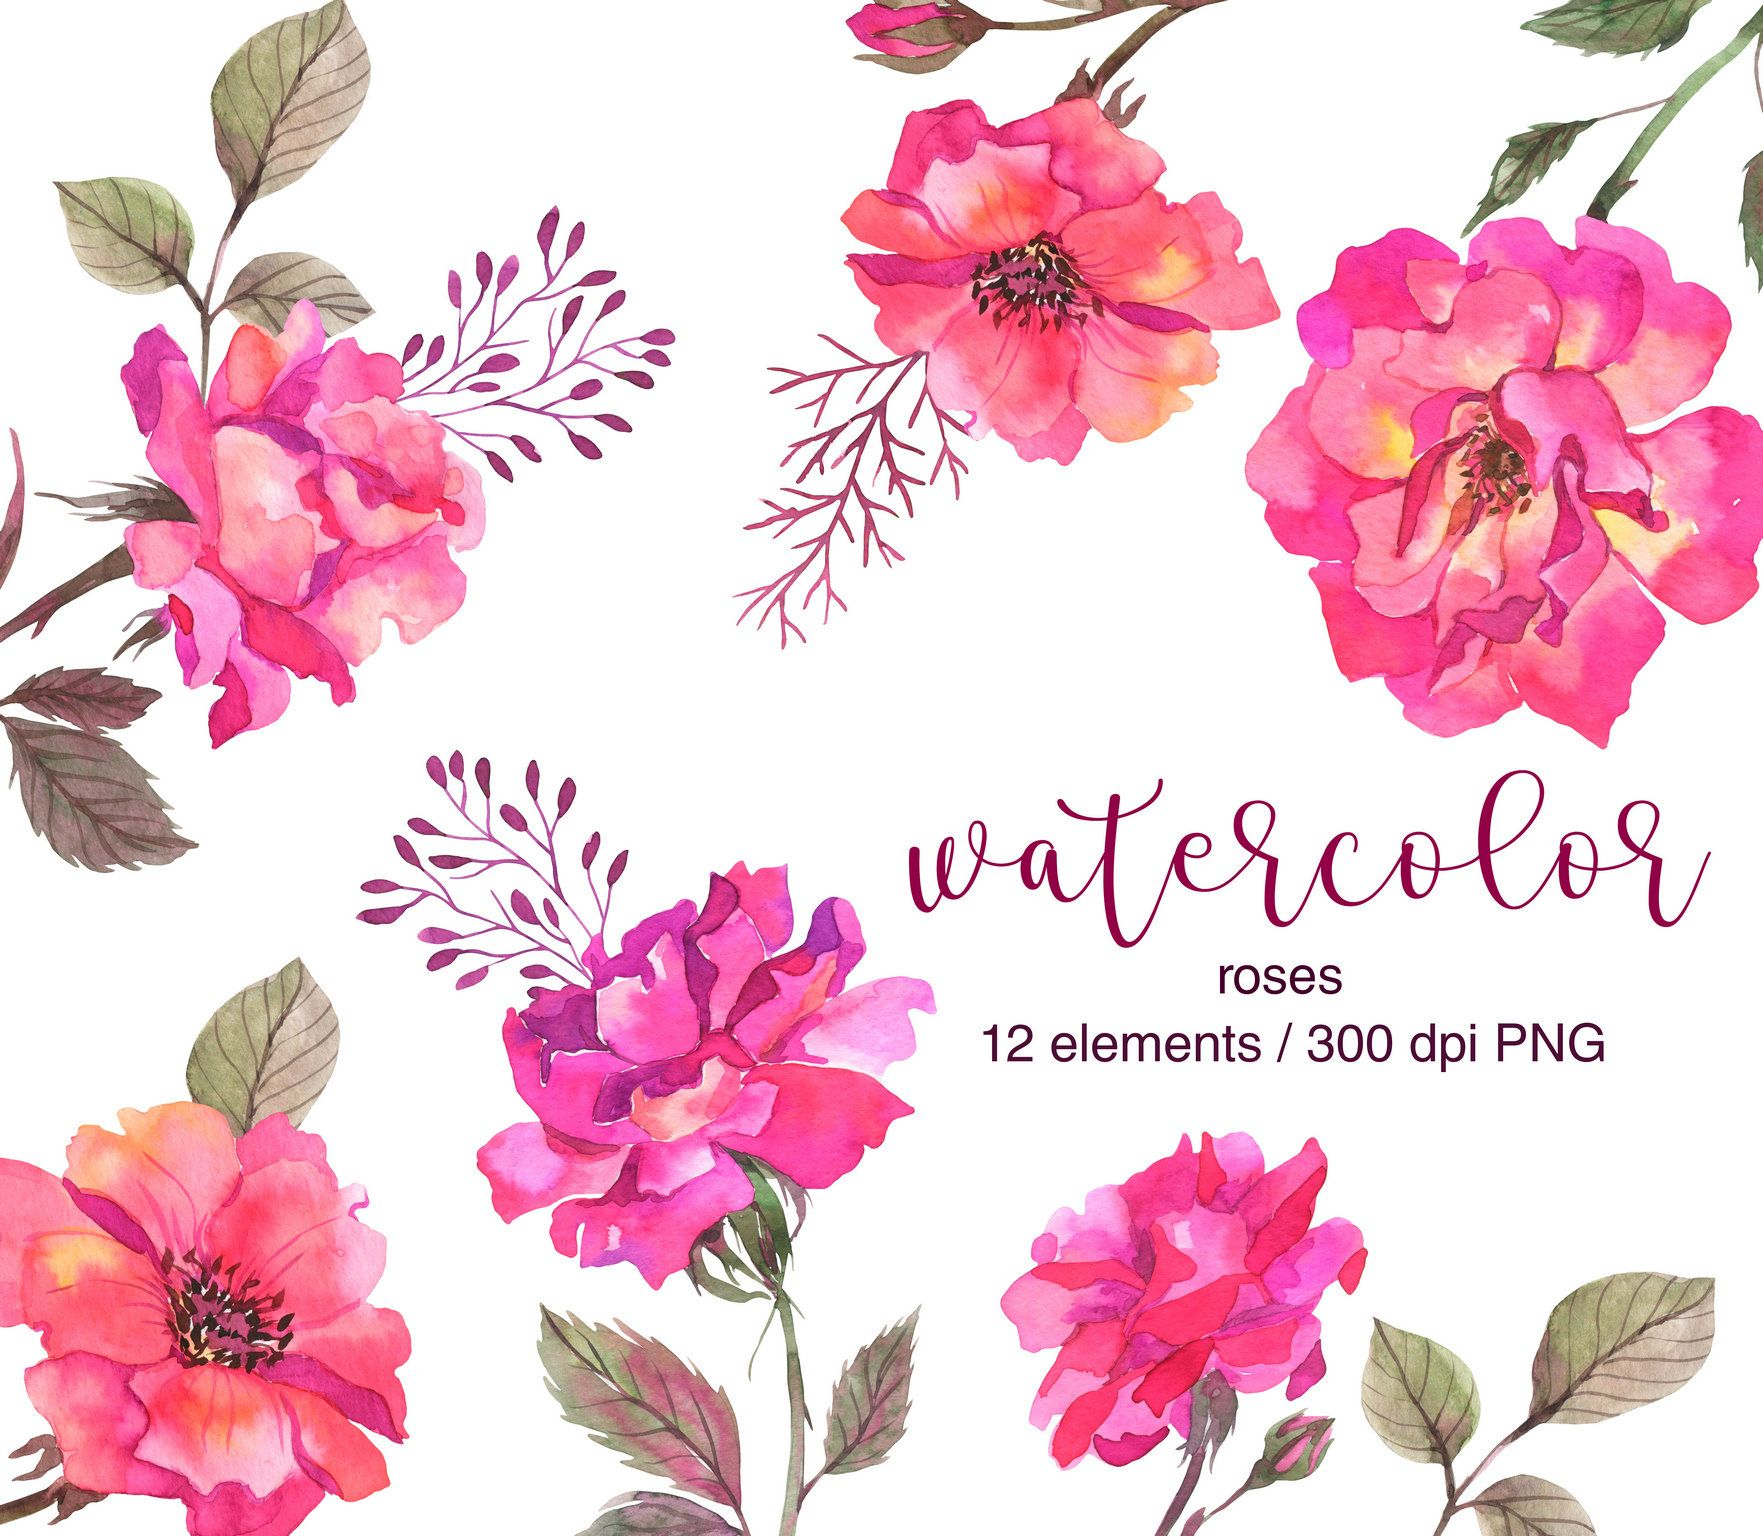 Watercolor Roses Clipart Wild Roses Clipart Roses Watercolor Clipart Watercolor Pink Roses Png Floral Clip Art Wedding Floral Design Clip Art Watercolor Rose Watercolor Flowers